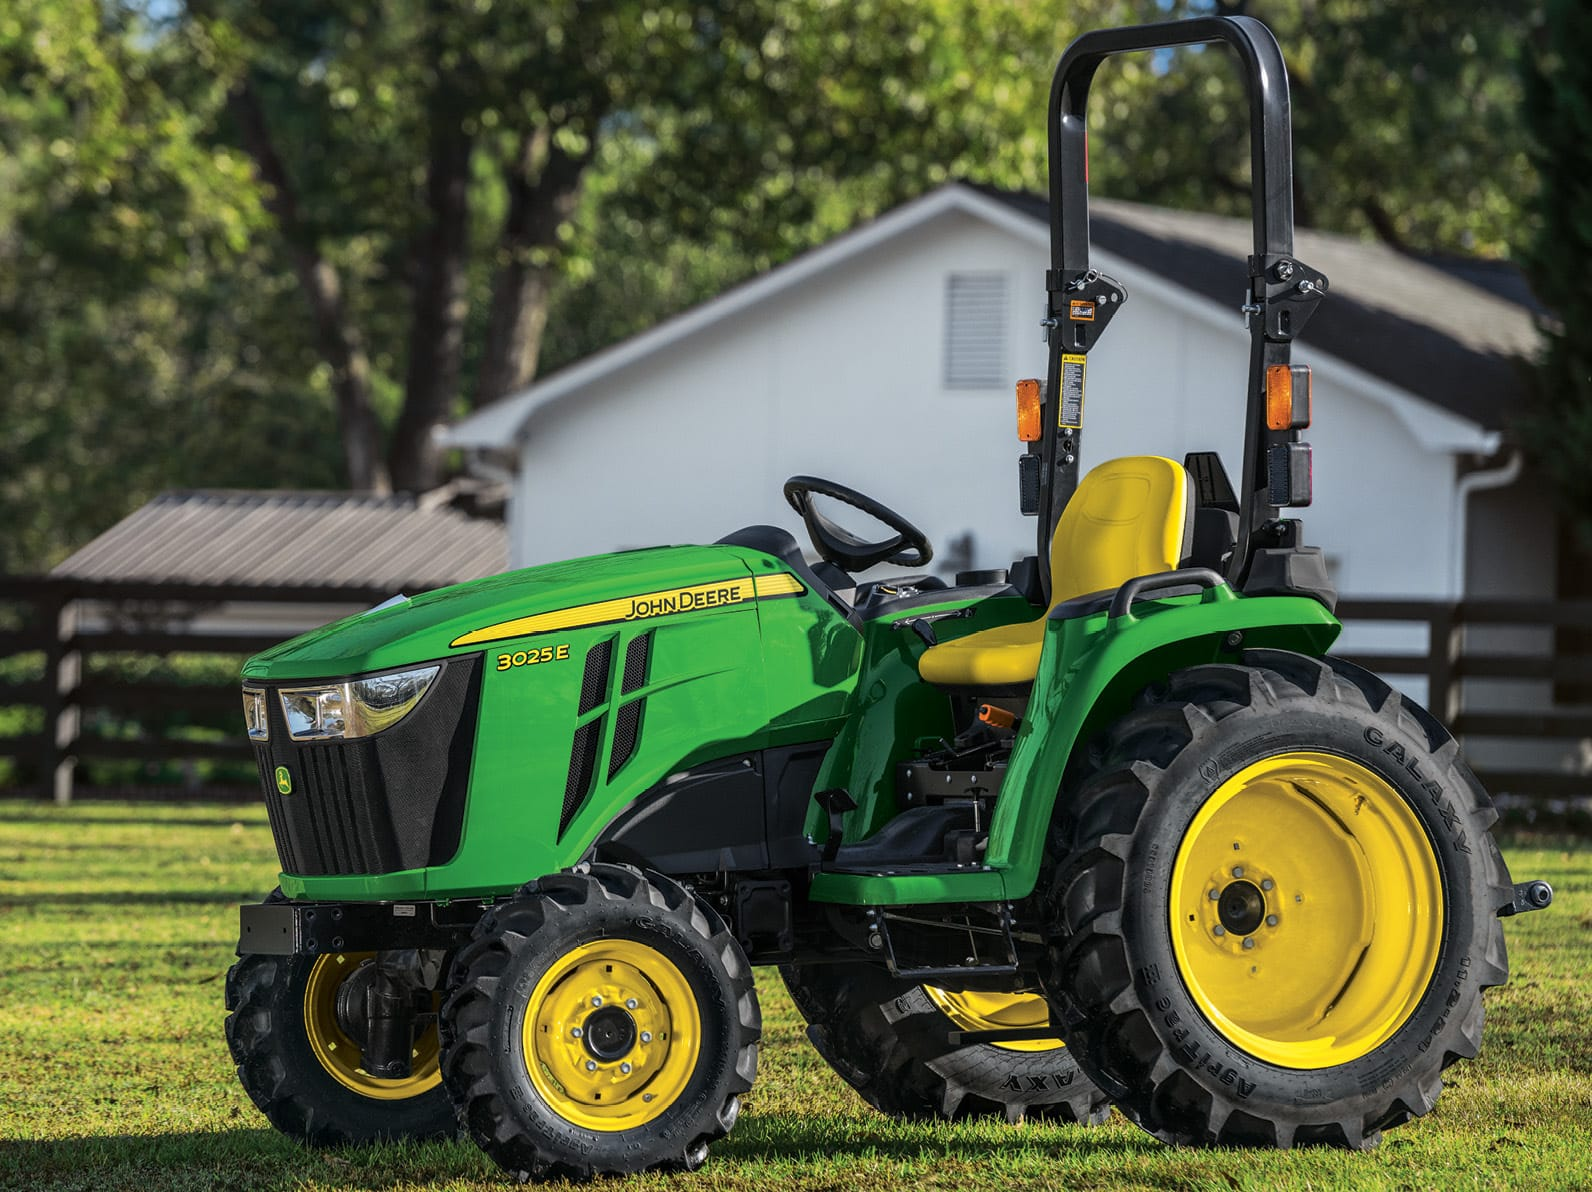 Promotions | John Deere Equipment Specials | Parts and Service